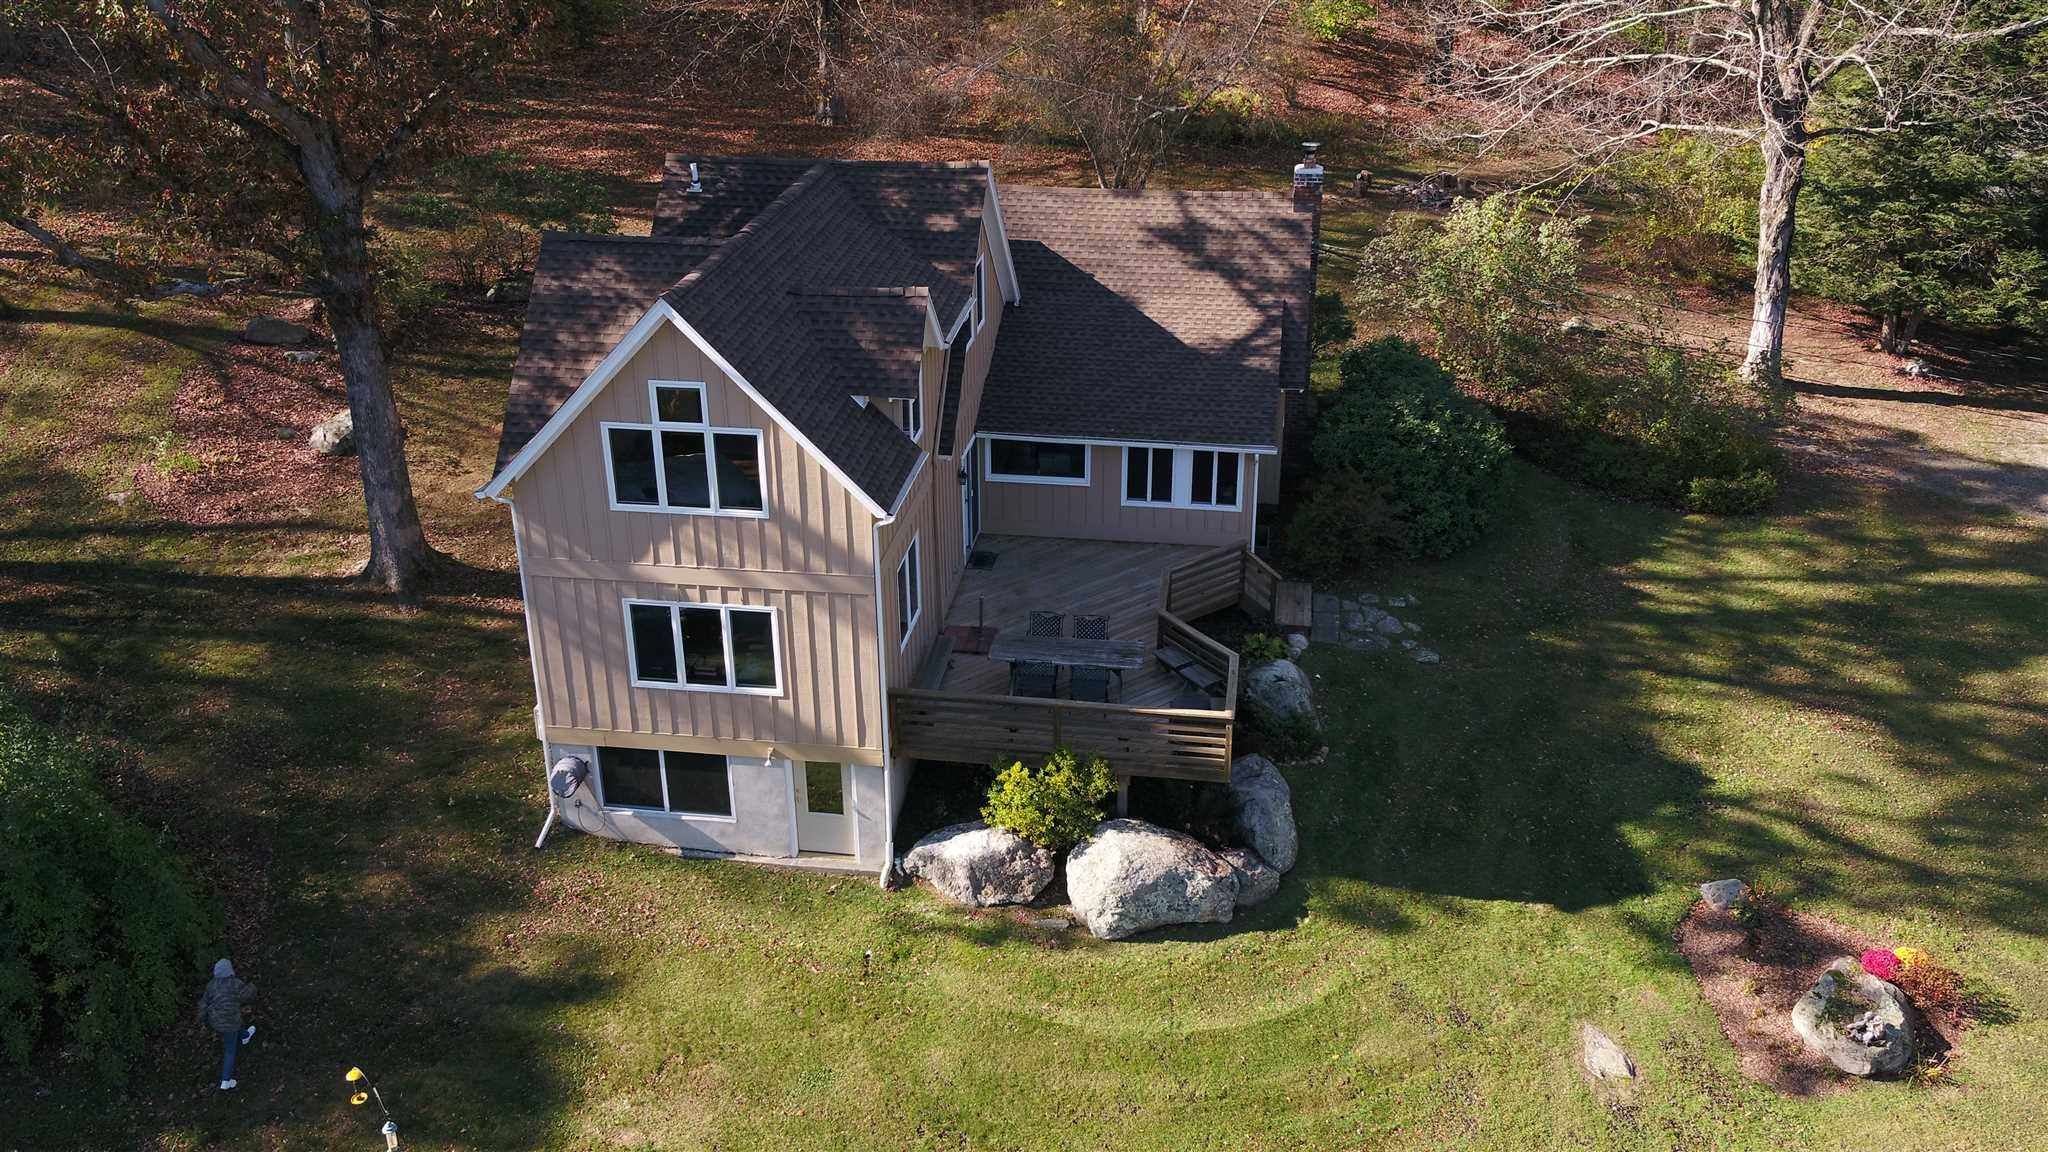 Single Family Home for Sale at PUDDING 341 PUDDING 341 Kent, New York 10512 United States